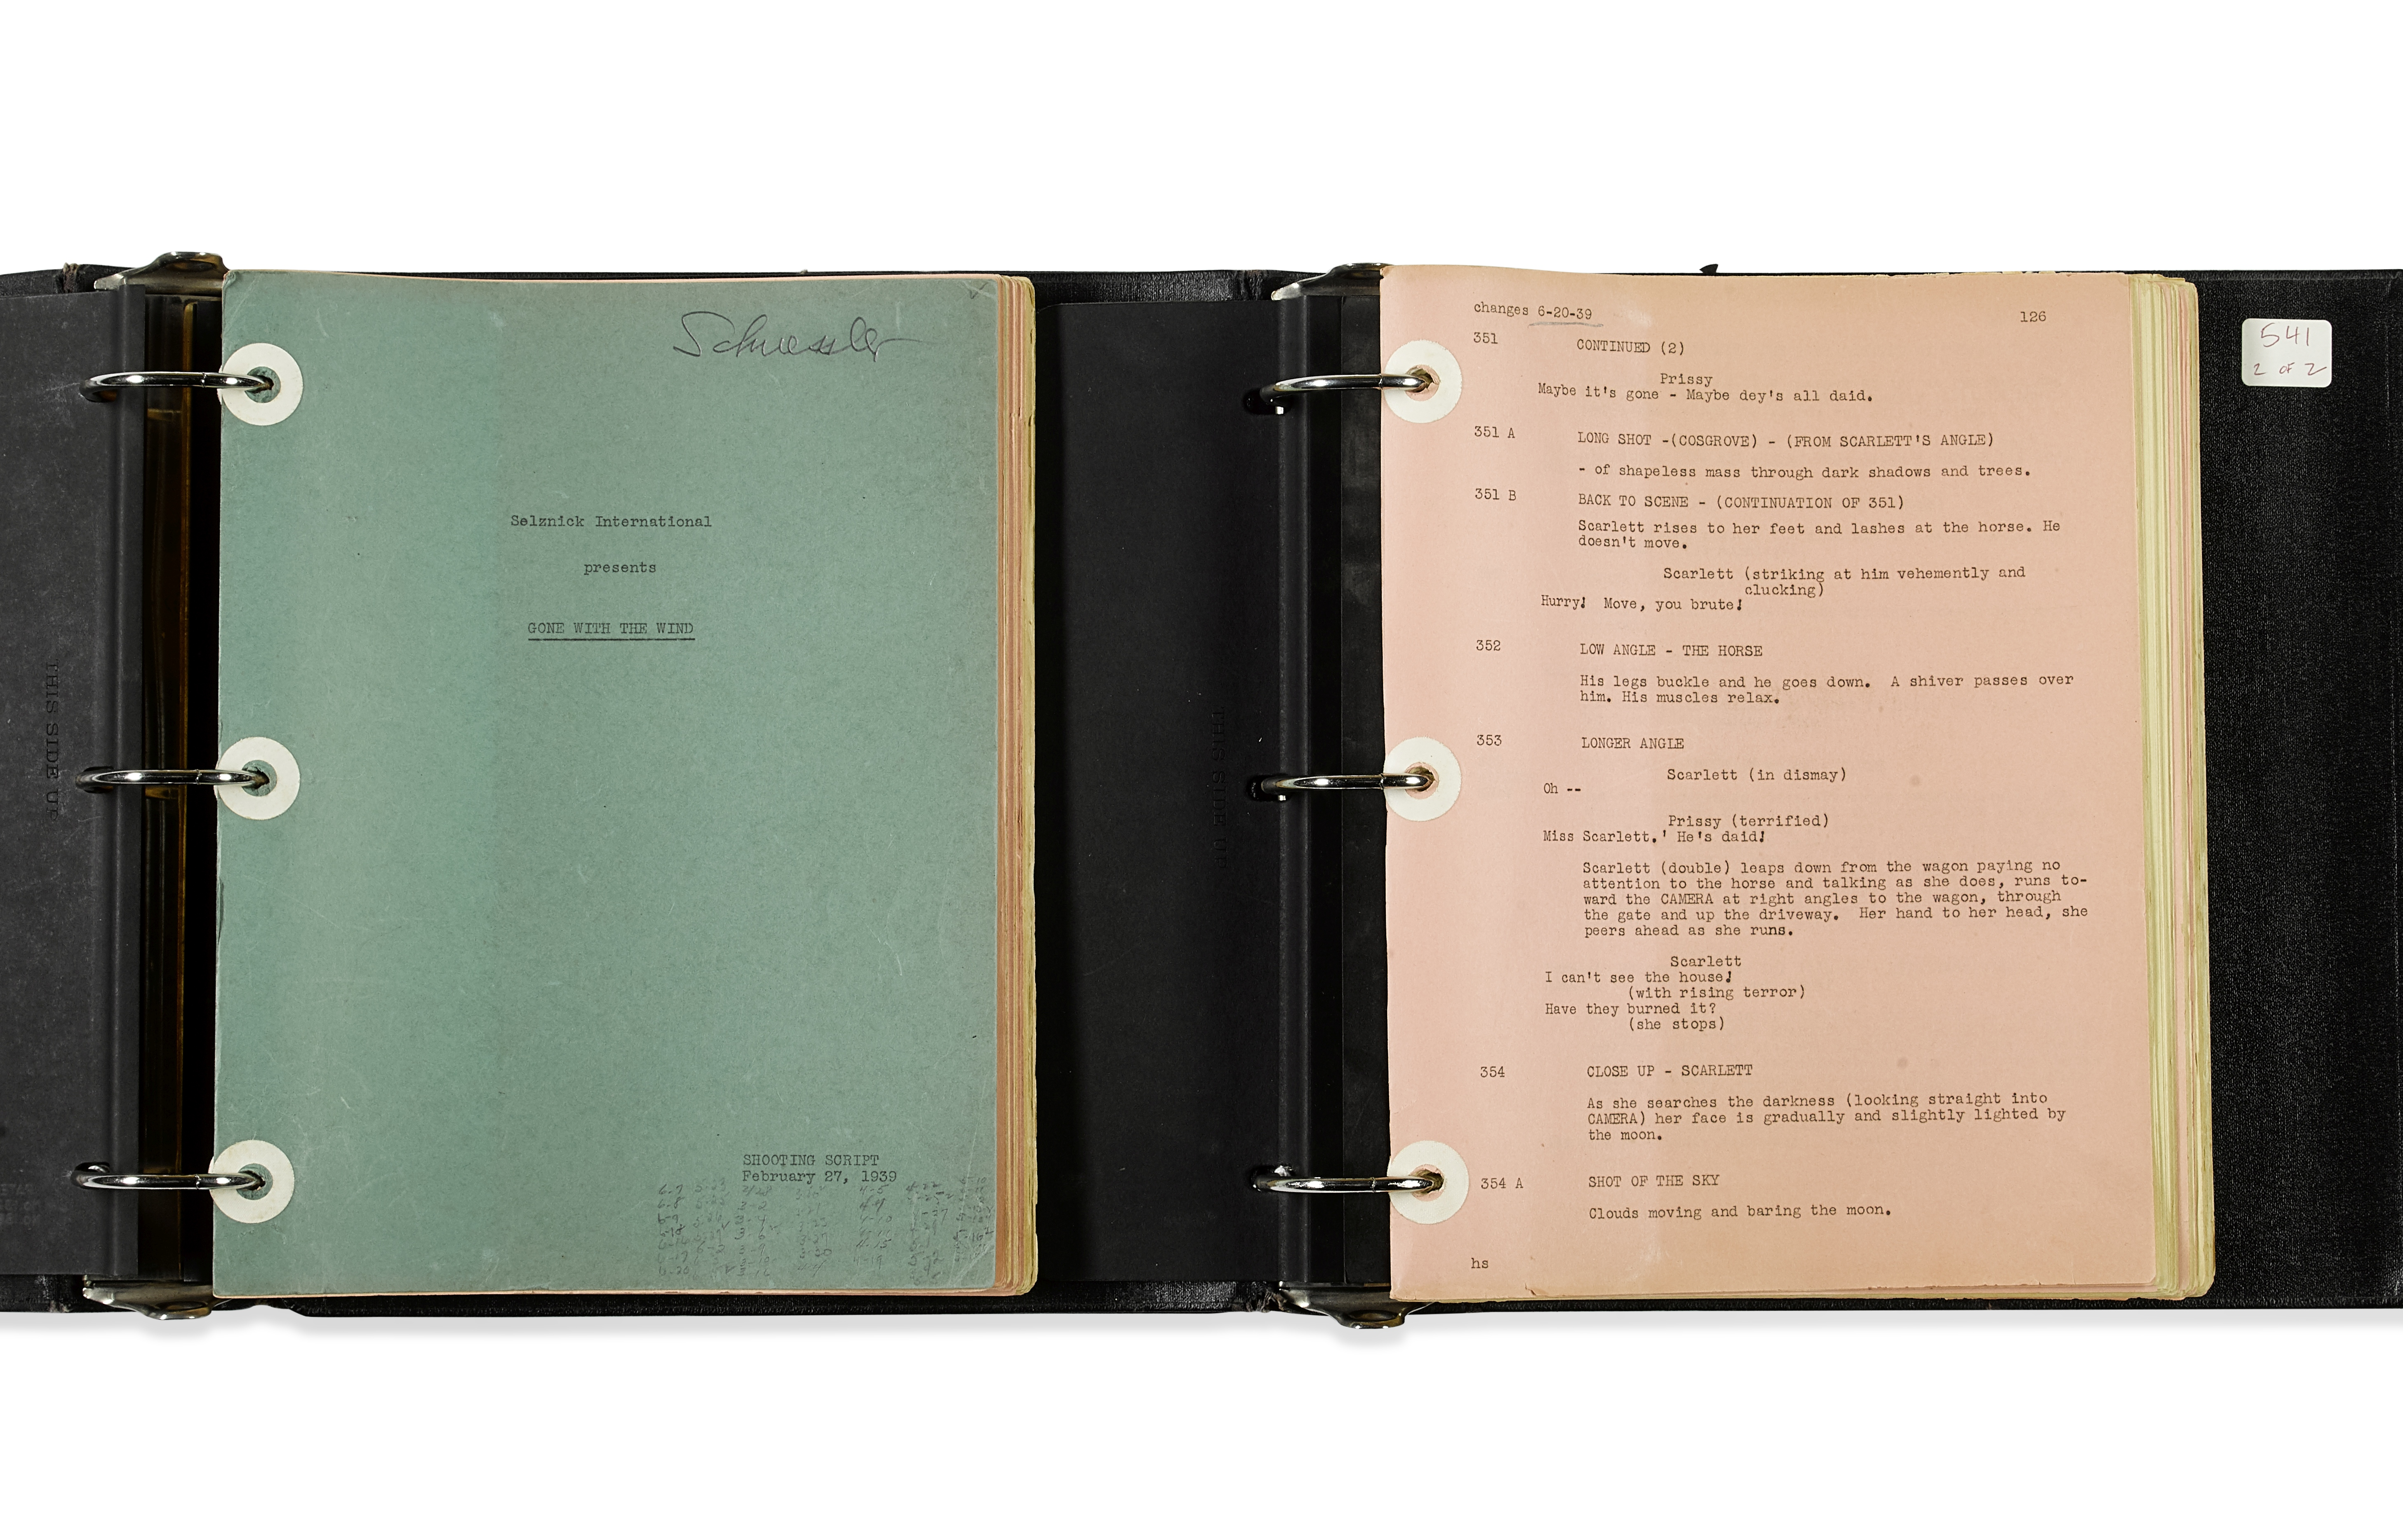 Lot 1046 - A Gone With the Wind shooting script belonging to casting director Fred Schuessler